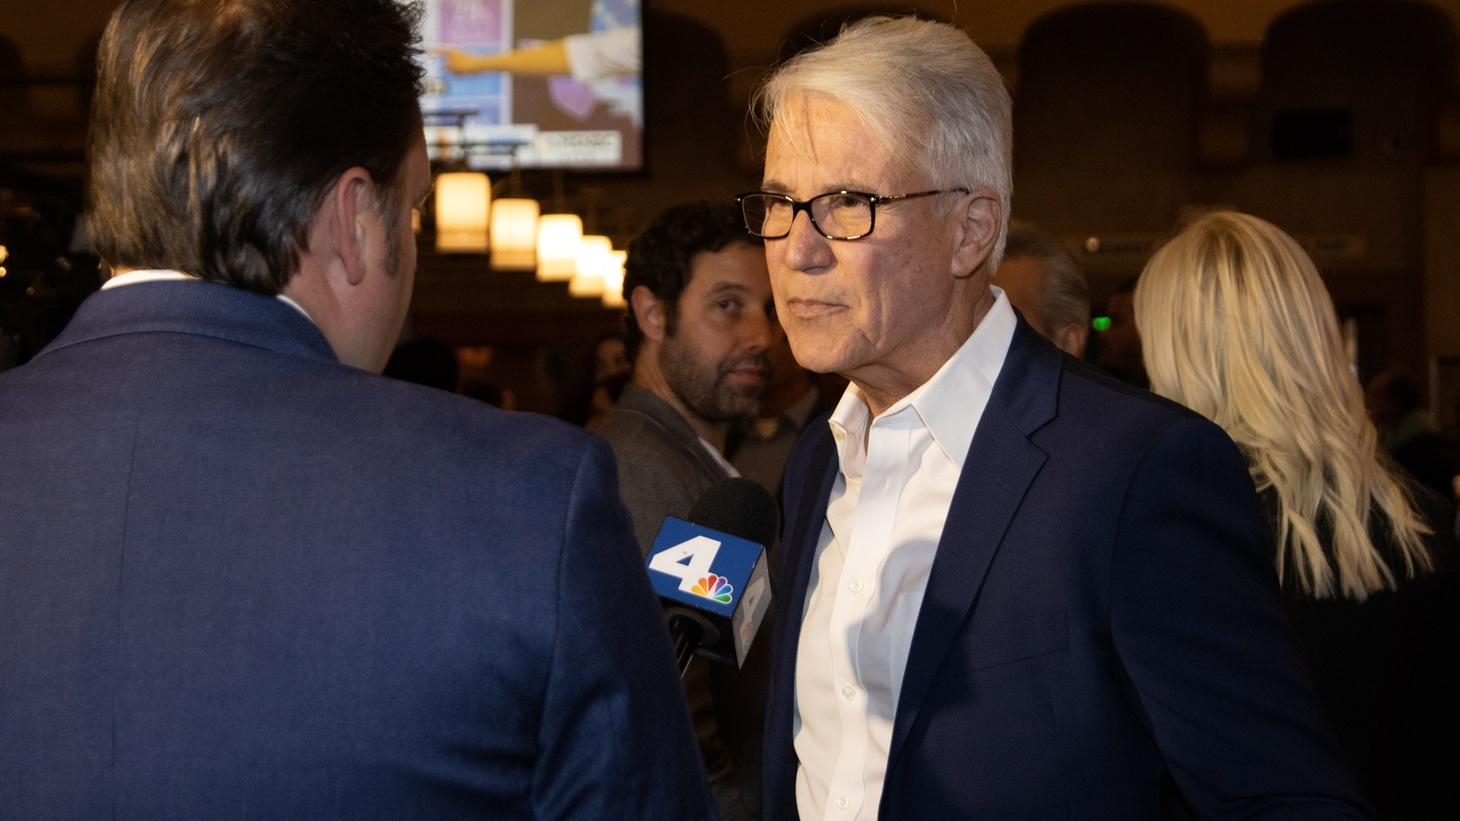 George Gascón at an election night party on March 3, 2020. The Association of Deputy District Attorneys (ADDA) of LA County brought a lawsuit against Gascón in December 2020. In early February 2021, the judge ruled mostly in favor of ADDA.